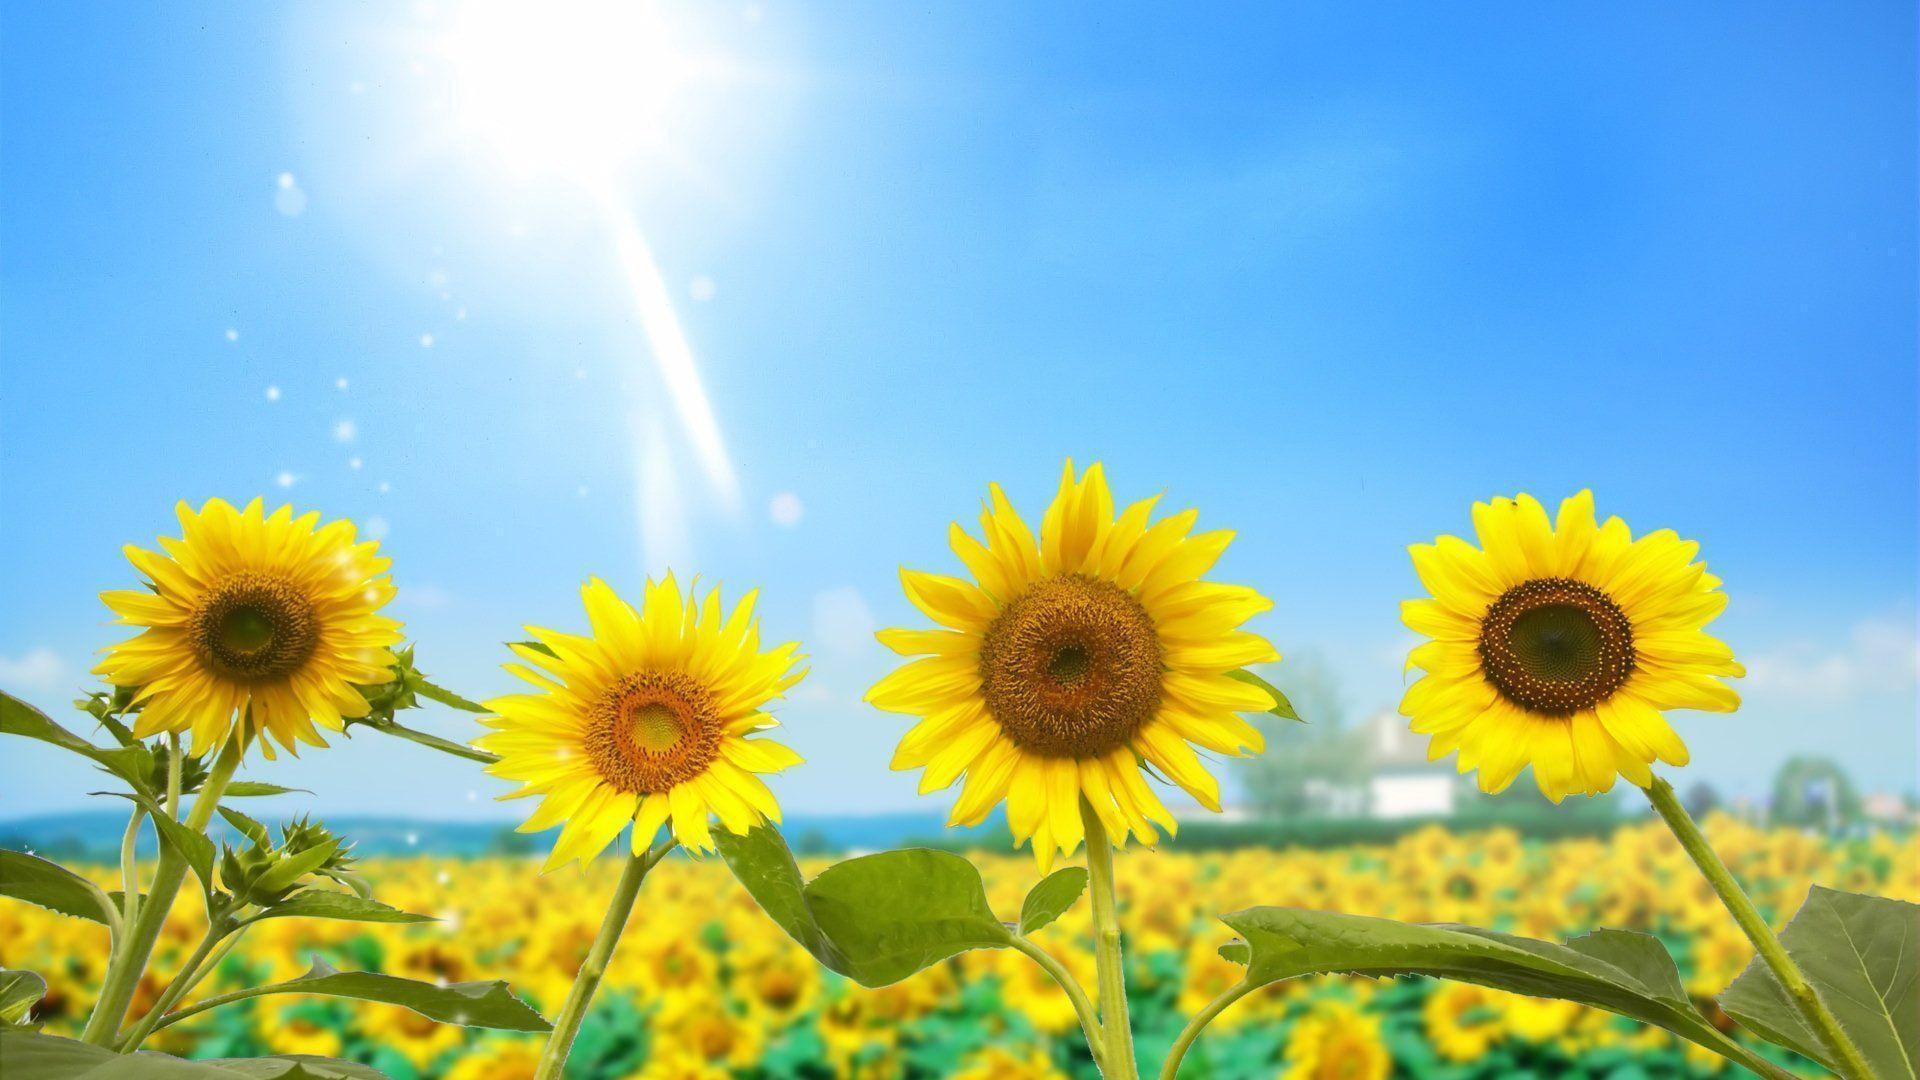 Sunflower Wallpaper Android Apps on Google Play